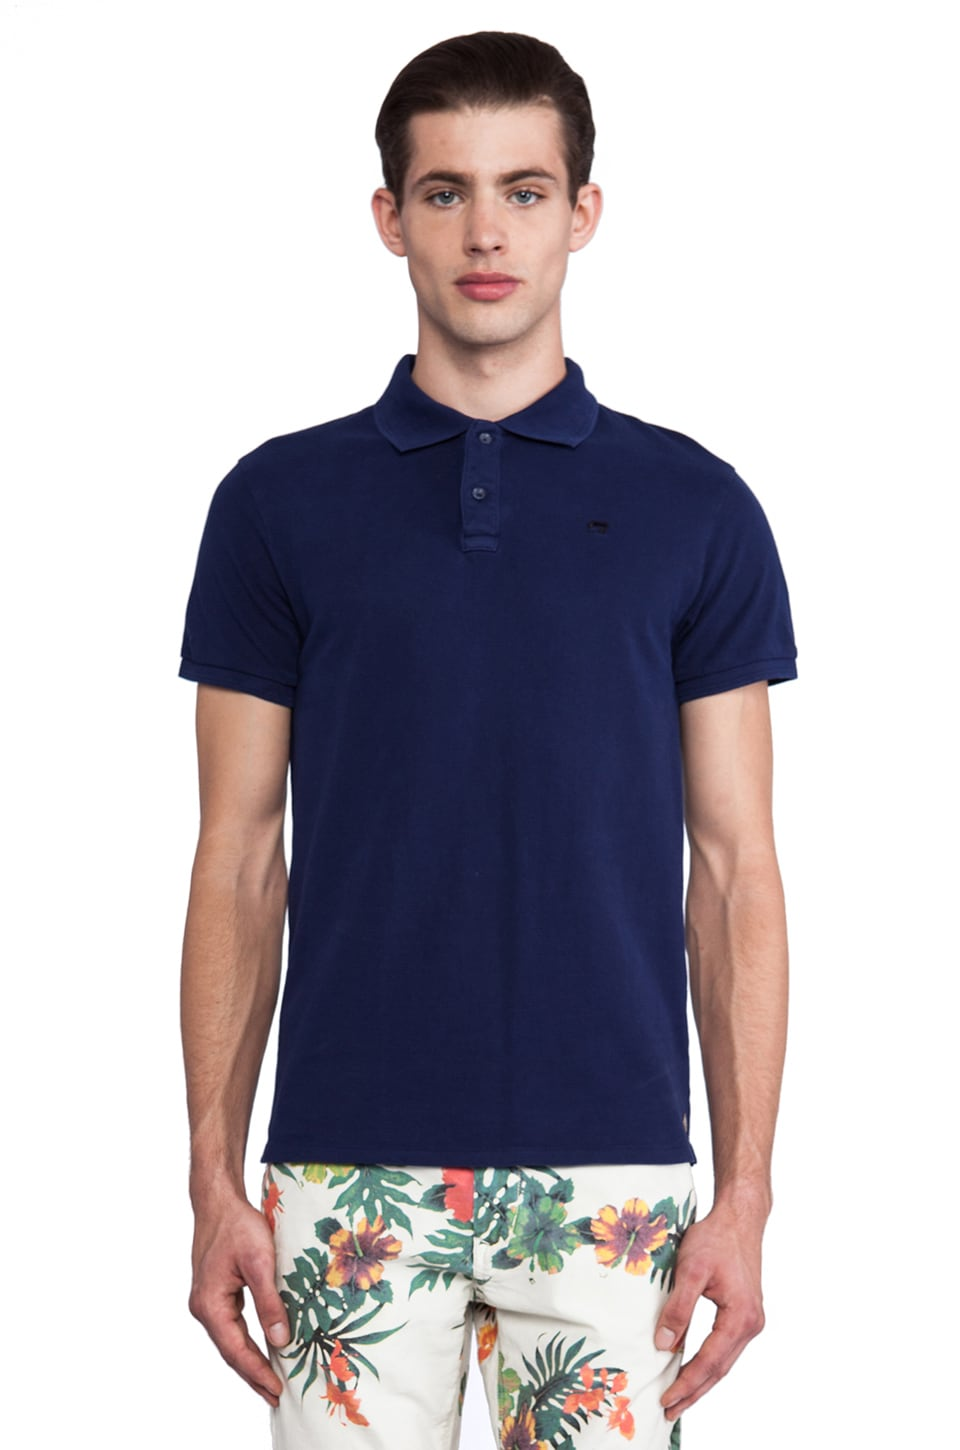 Scotch & Soda Classic Garment Dye Pique Polo in Electric Blue